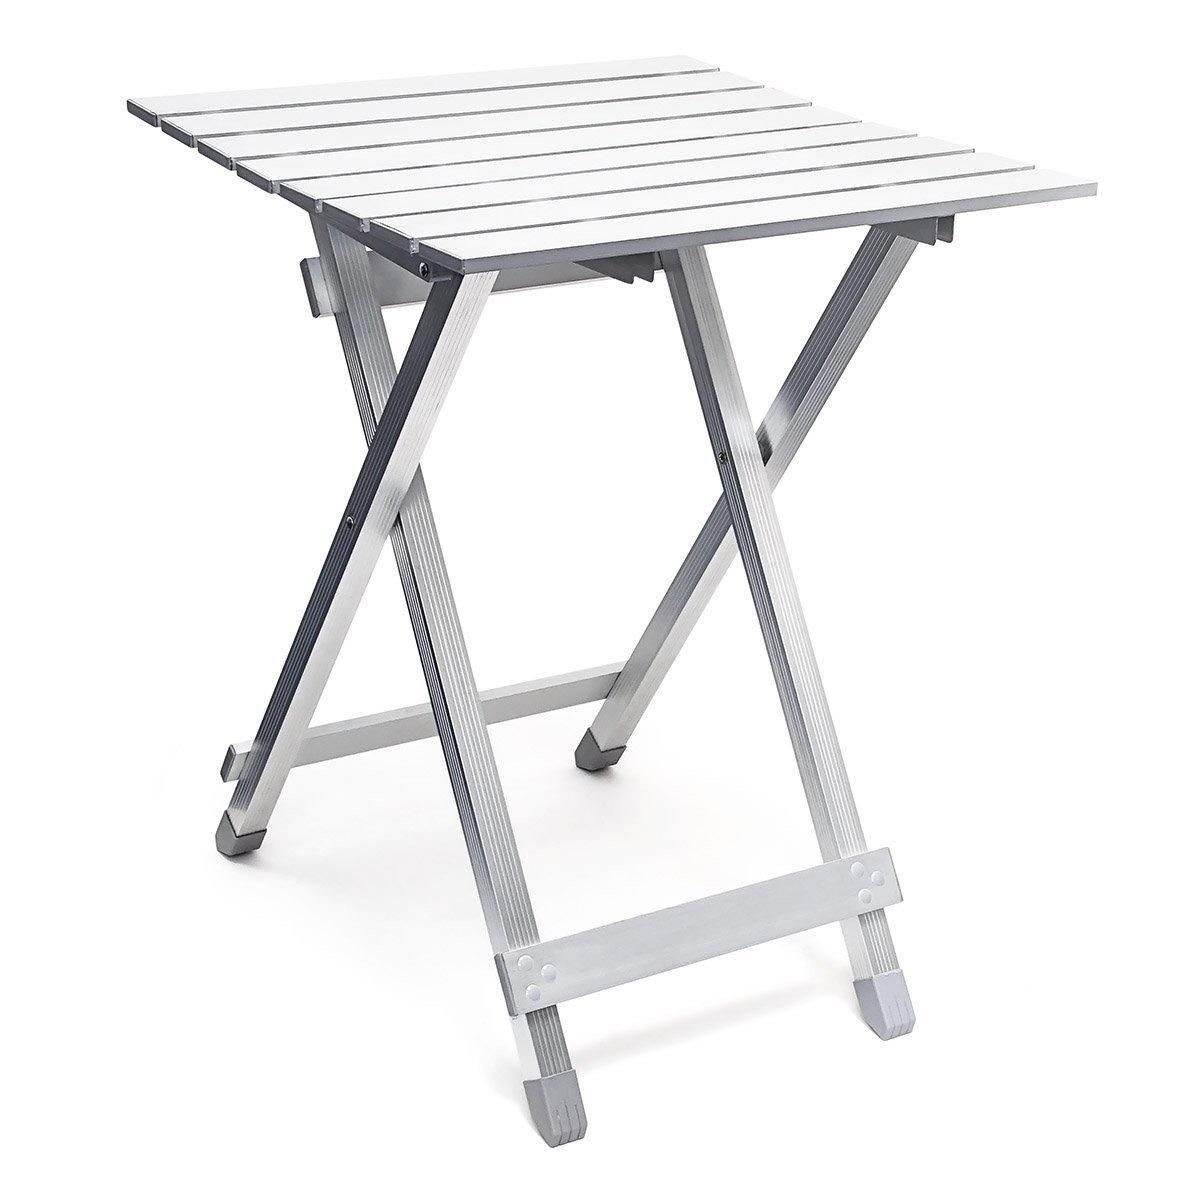 Aluminum Fold Up Table Modern Design (Image 1 of 20)